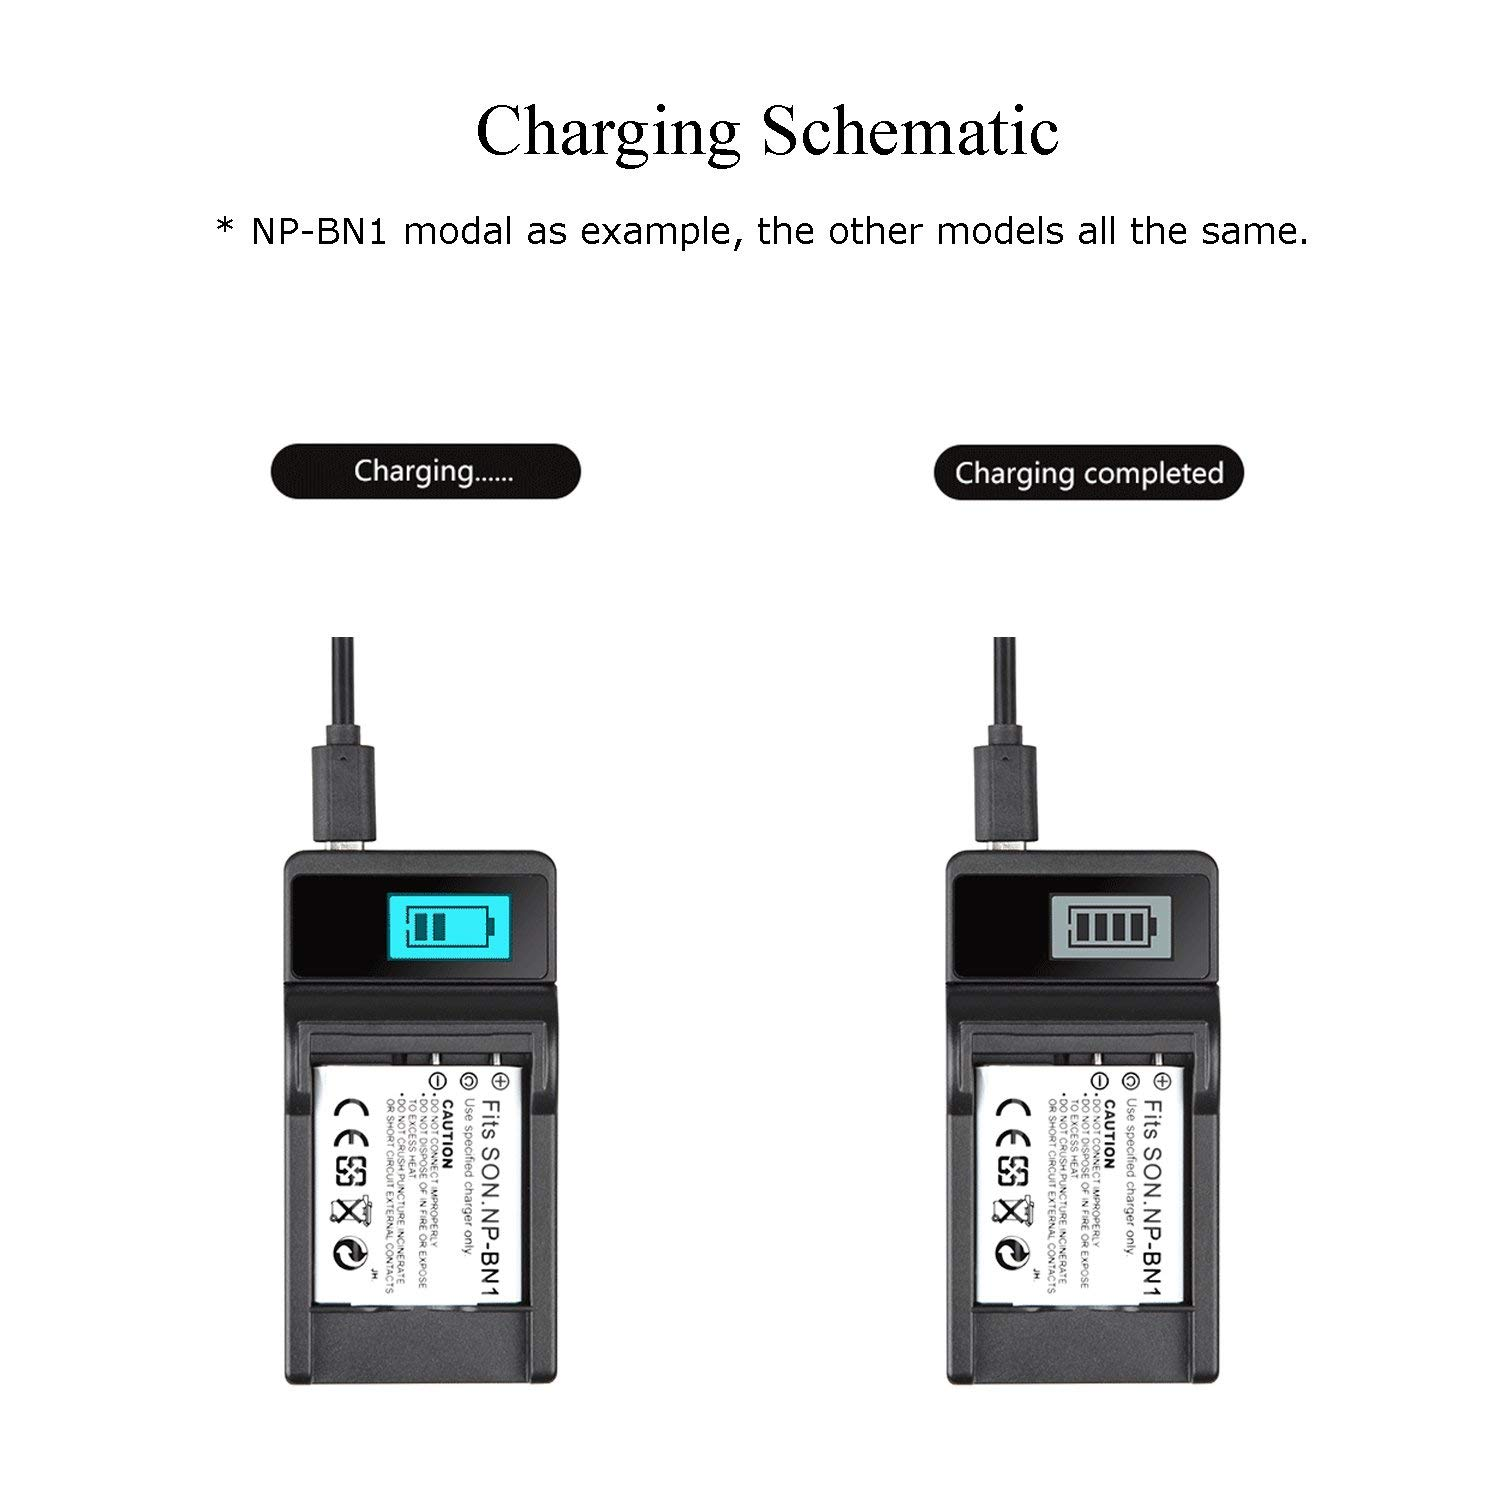 Portable USB Battery Charger for Casio Exilim EX-S5 EX-S6 EX-S7 EX-S8 EX-S9 Digital Camera